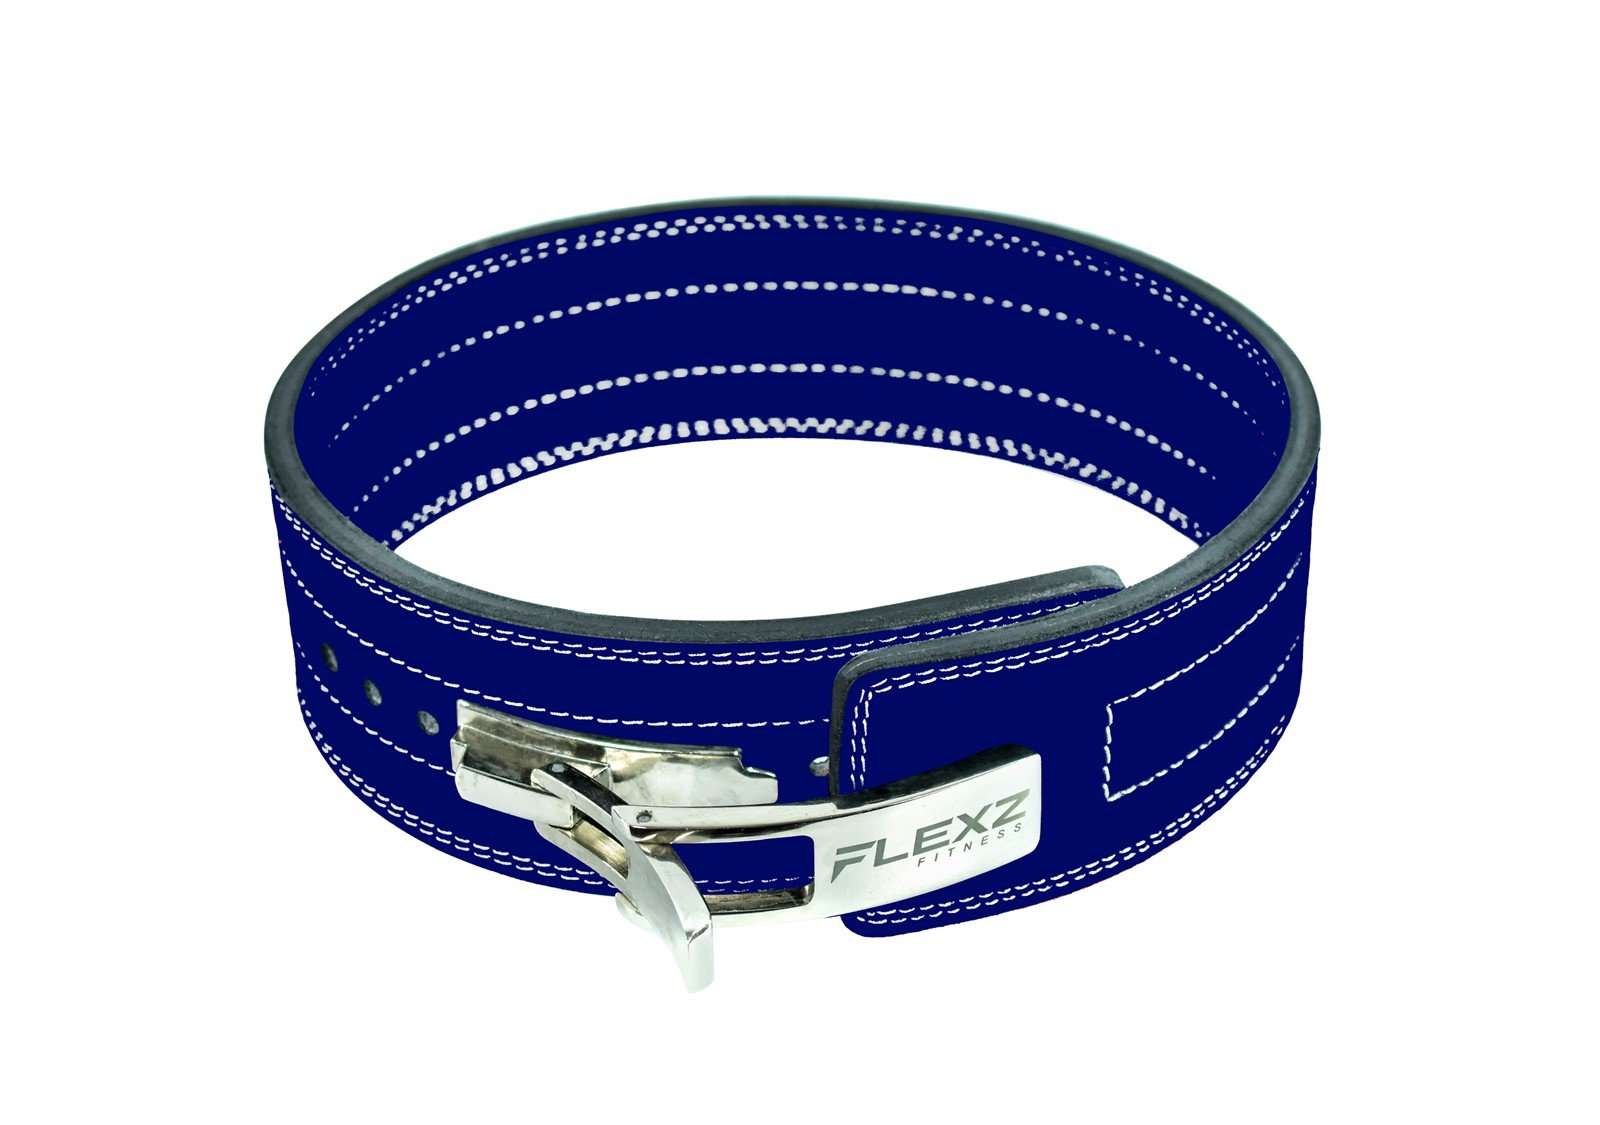 Flexz Fitness Lever Buckle Powerlifting Belt 10mm Weight Lifting Blue Small by Flexz Fitness (Image #2)